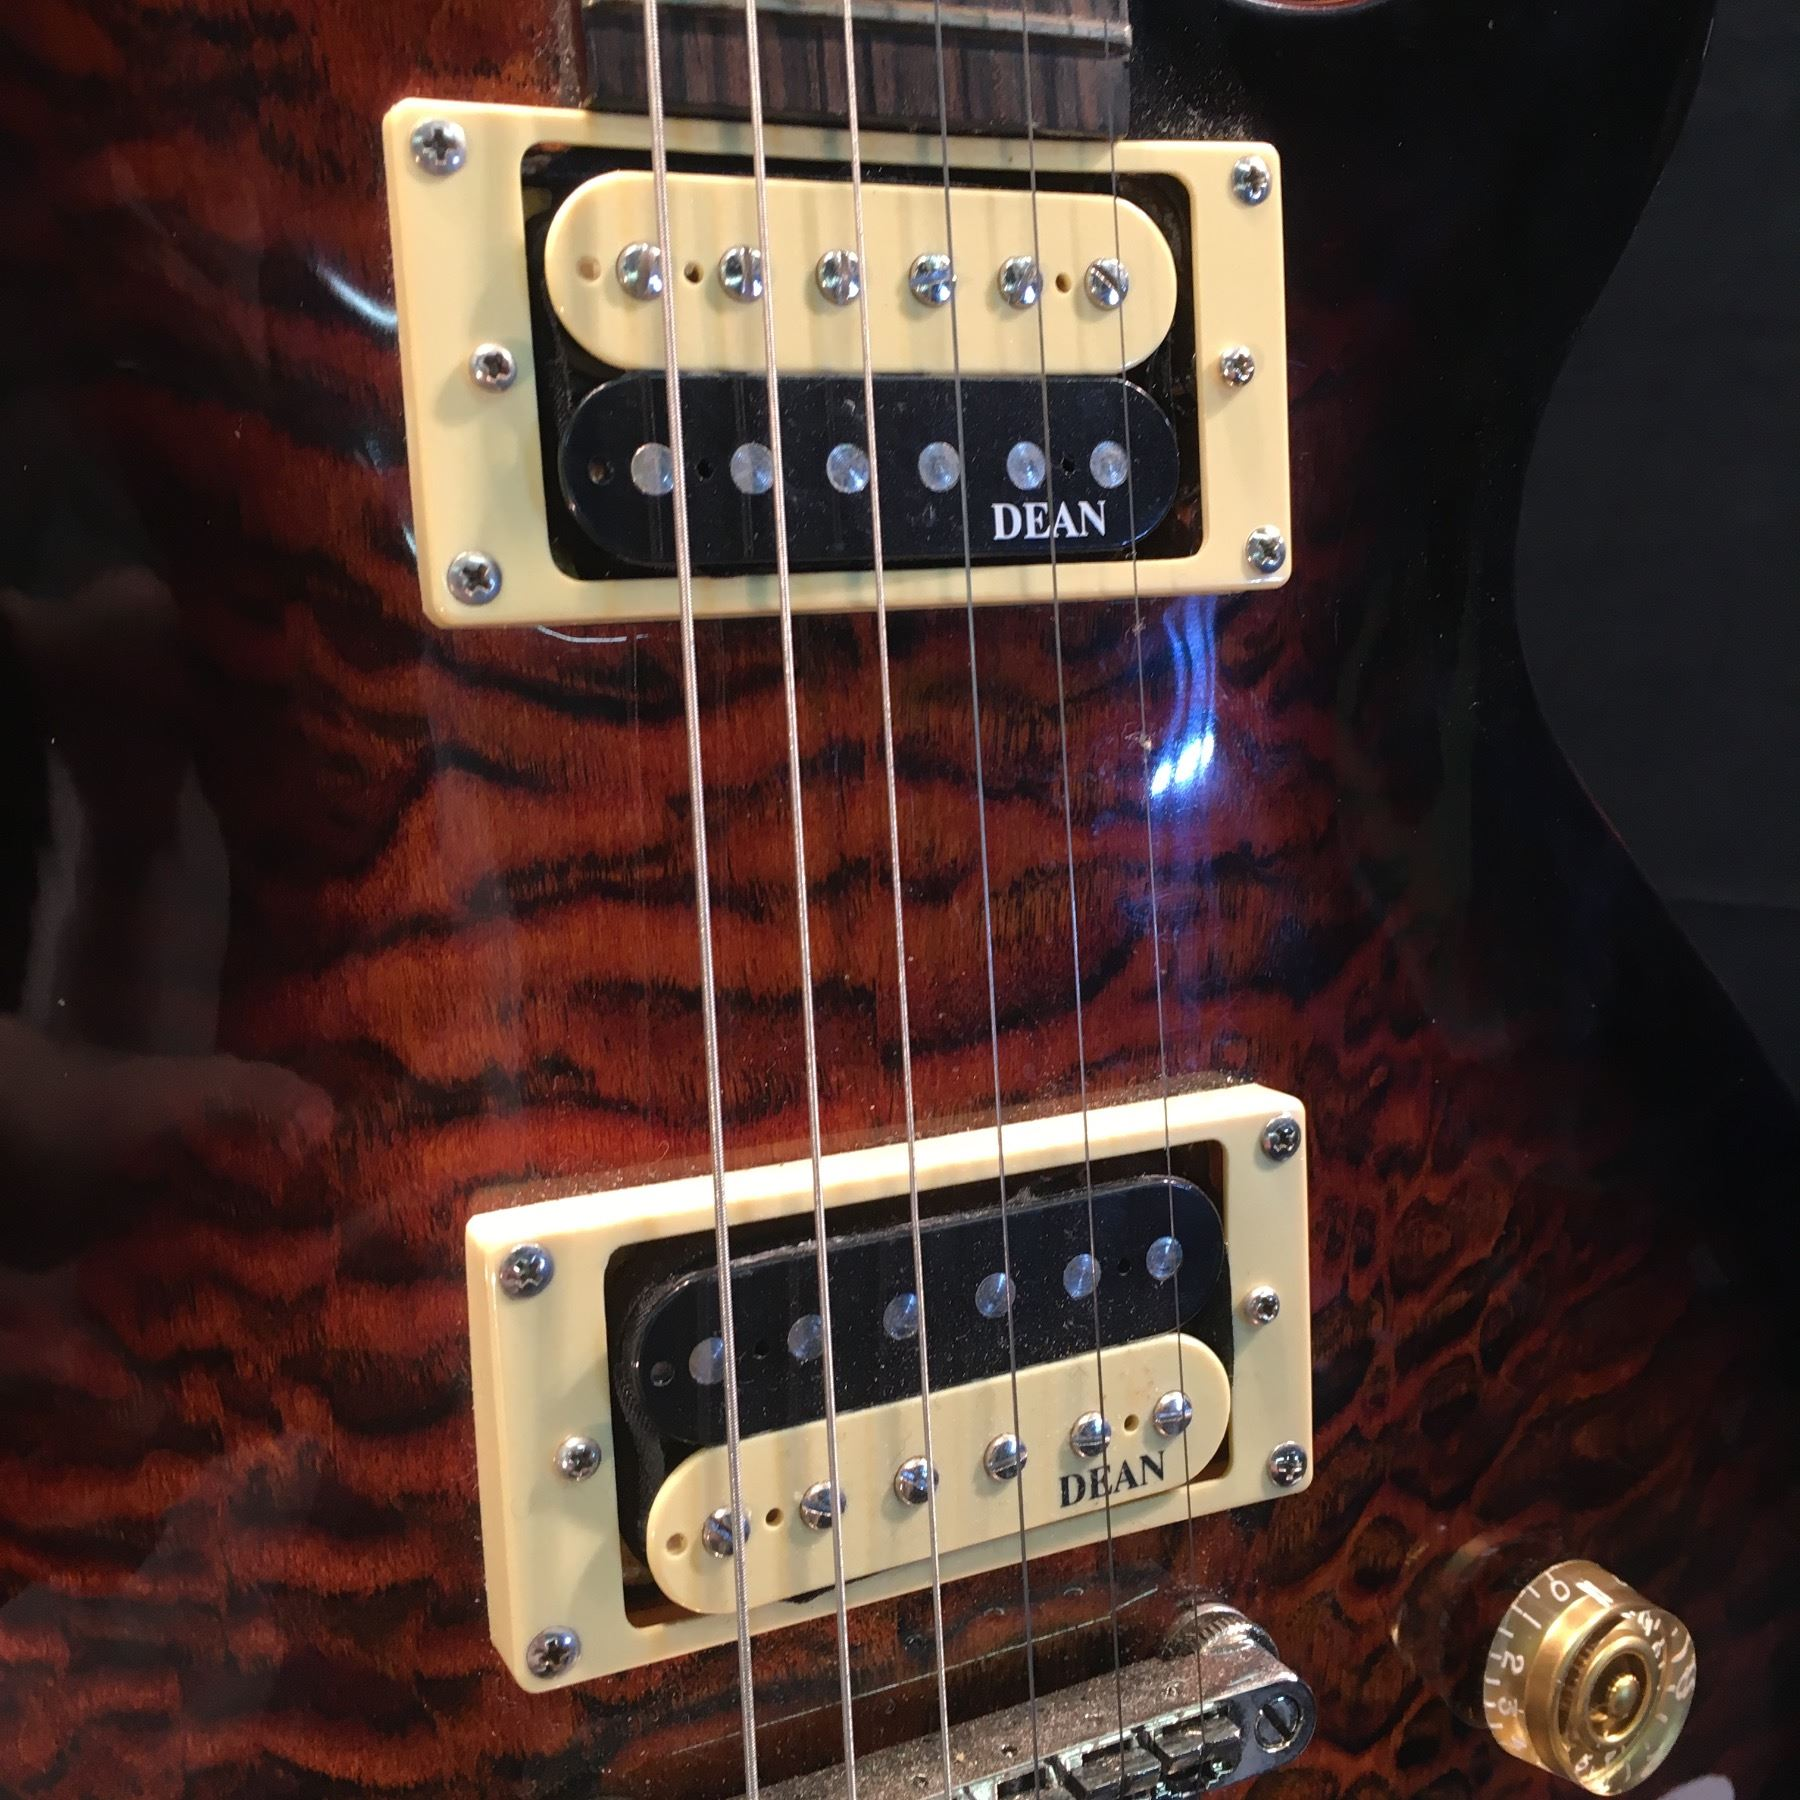 Dean Evo Les Paul Style Guitar With Two Humbucker Pickups Volume Tone Controls And Three